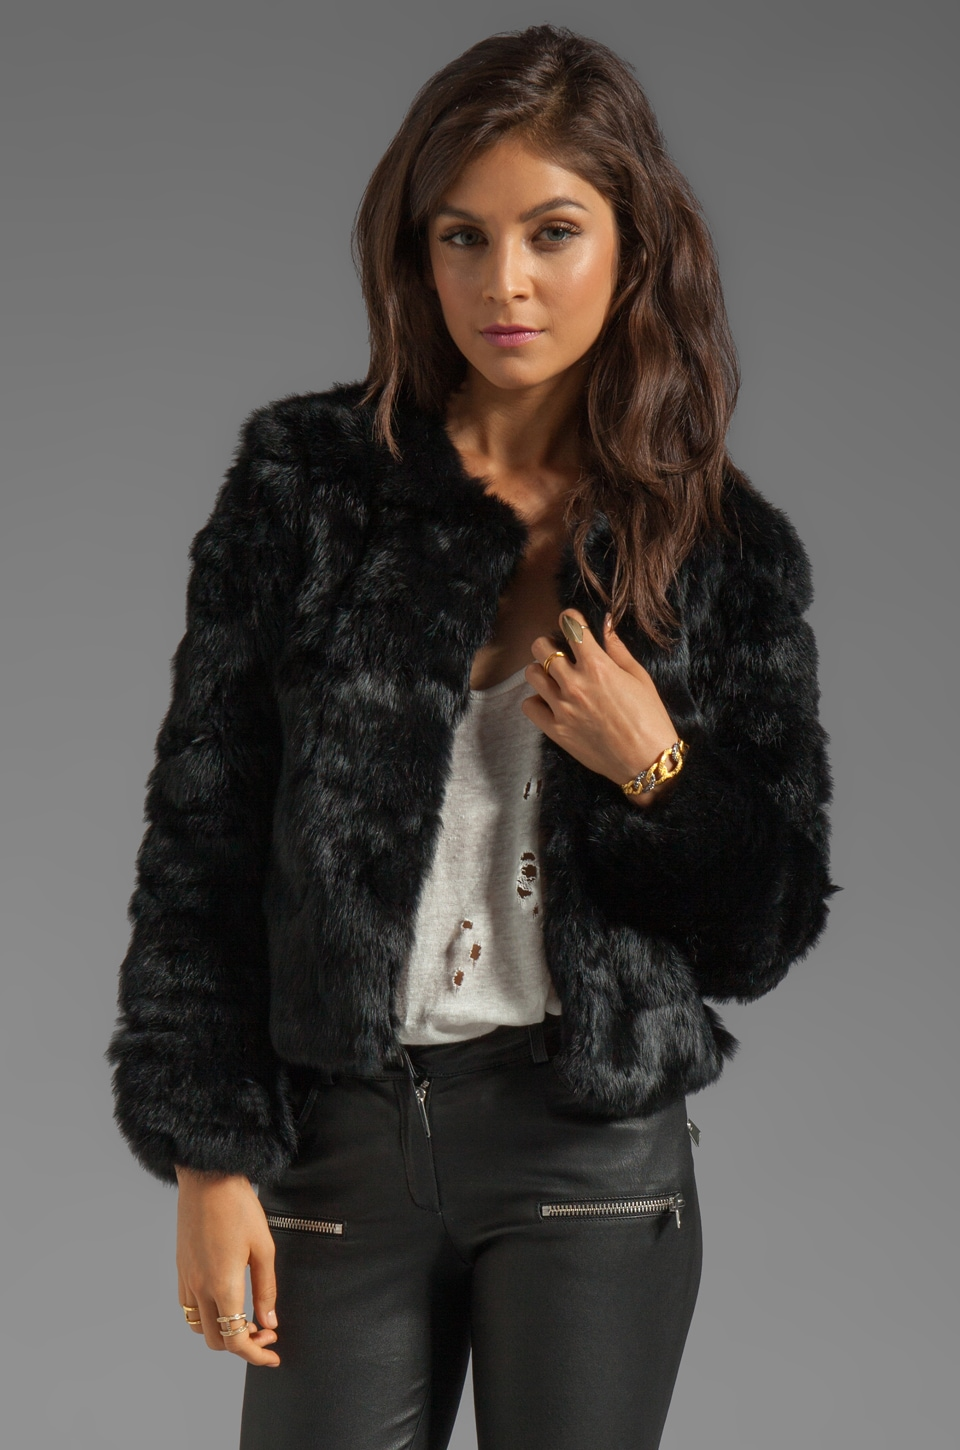 Dolce Vita Luxor Rabbit Fur Jacket in black